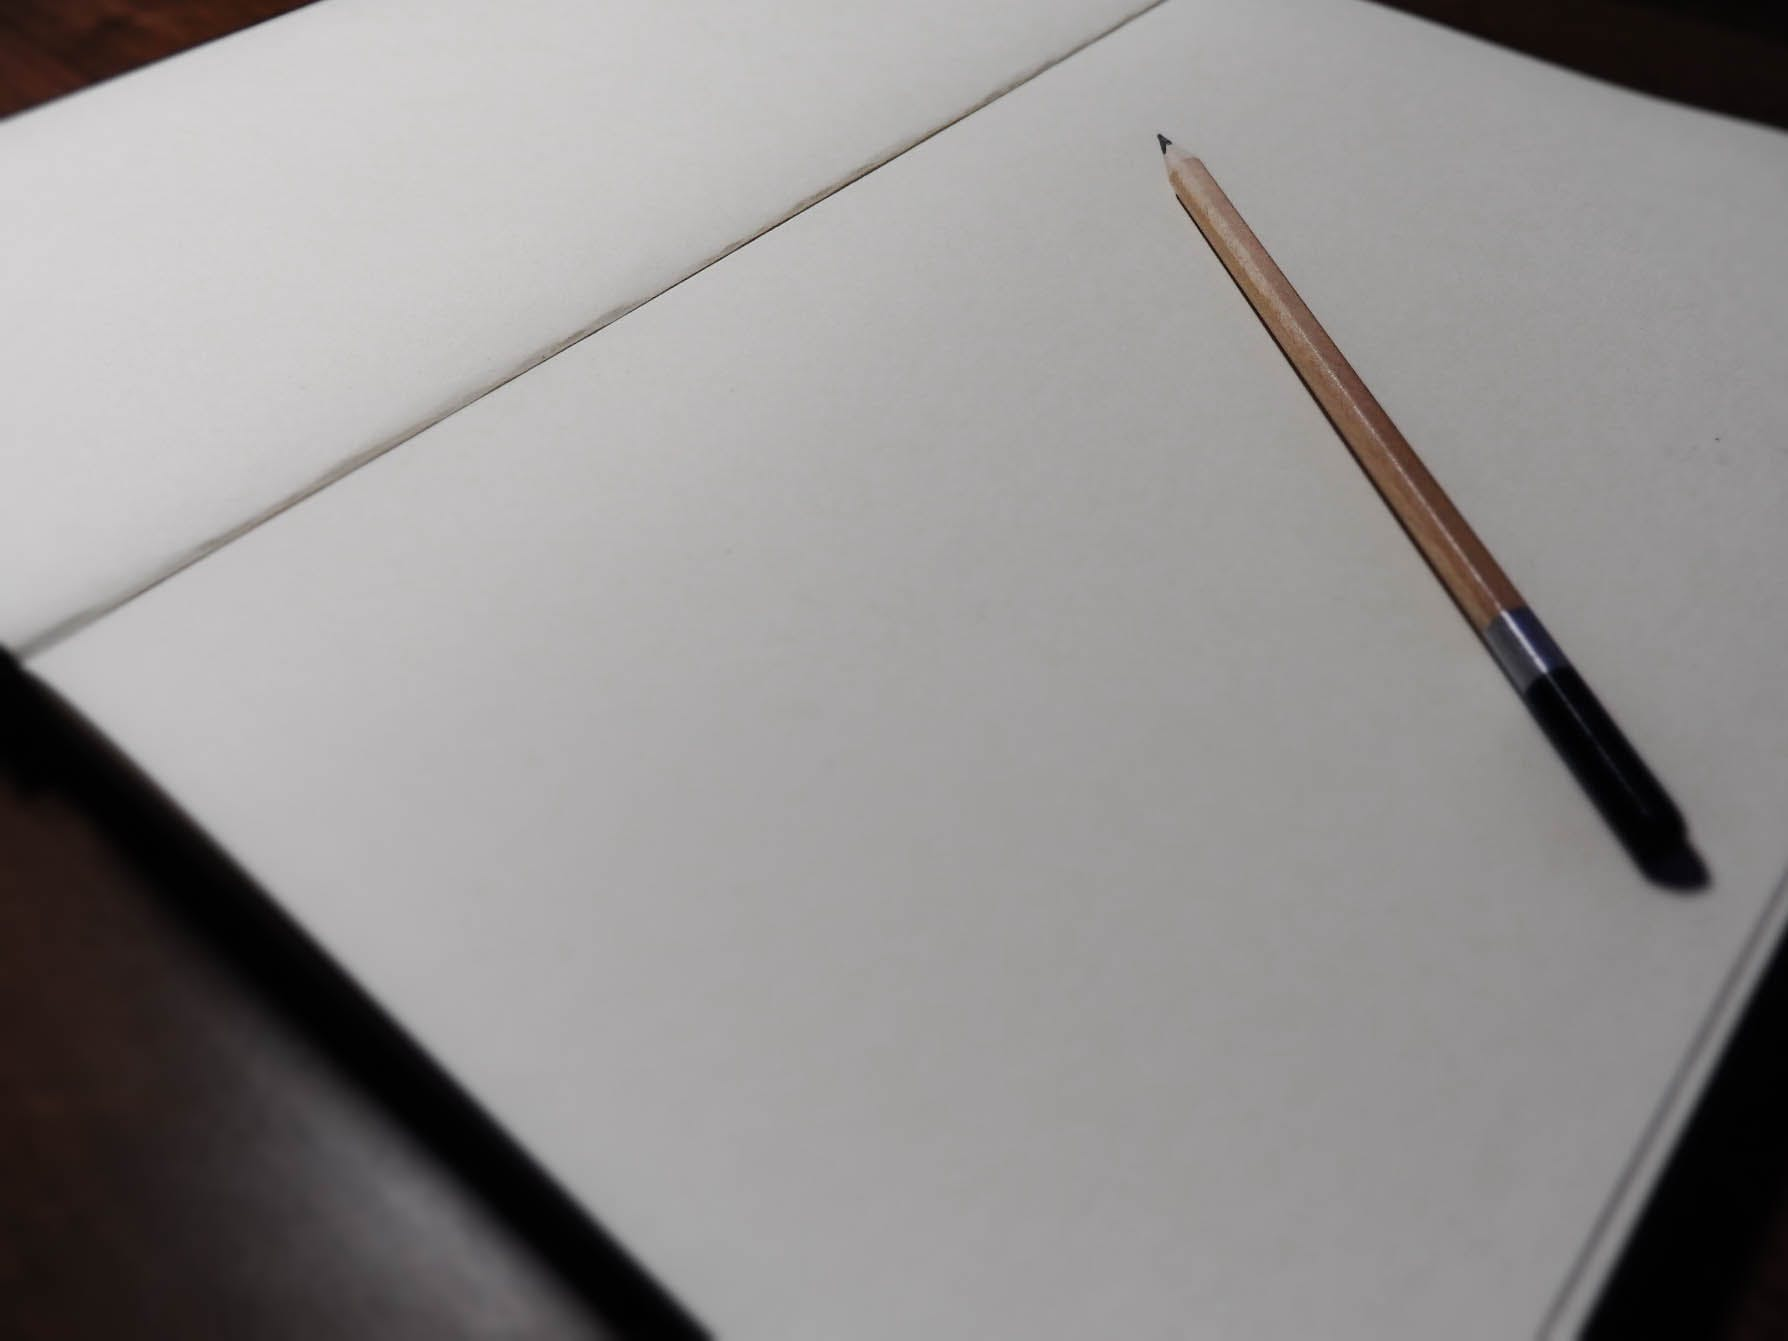 Free stock photo of pencil, paper